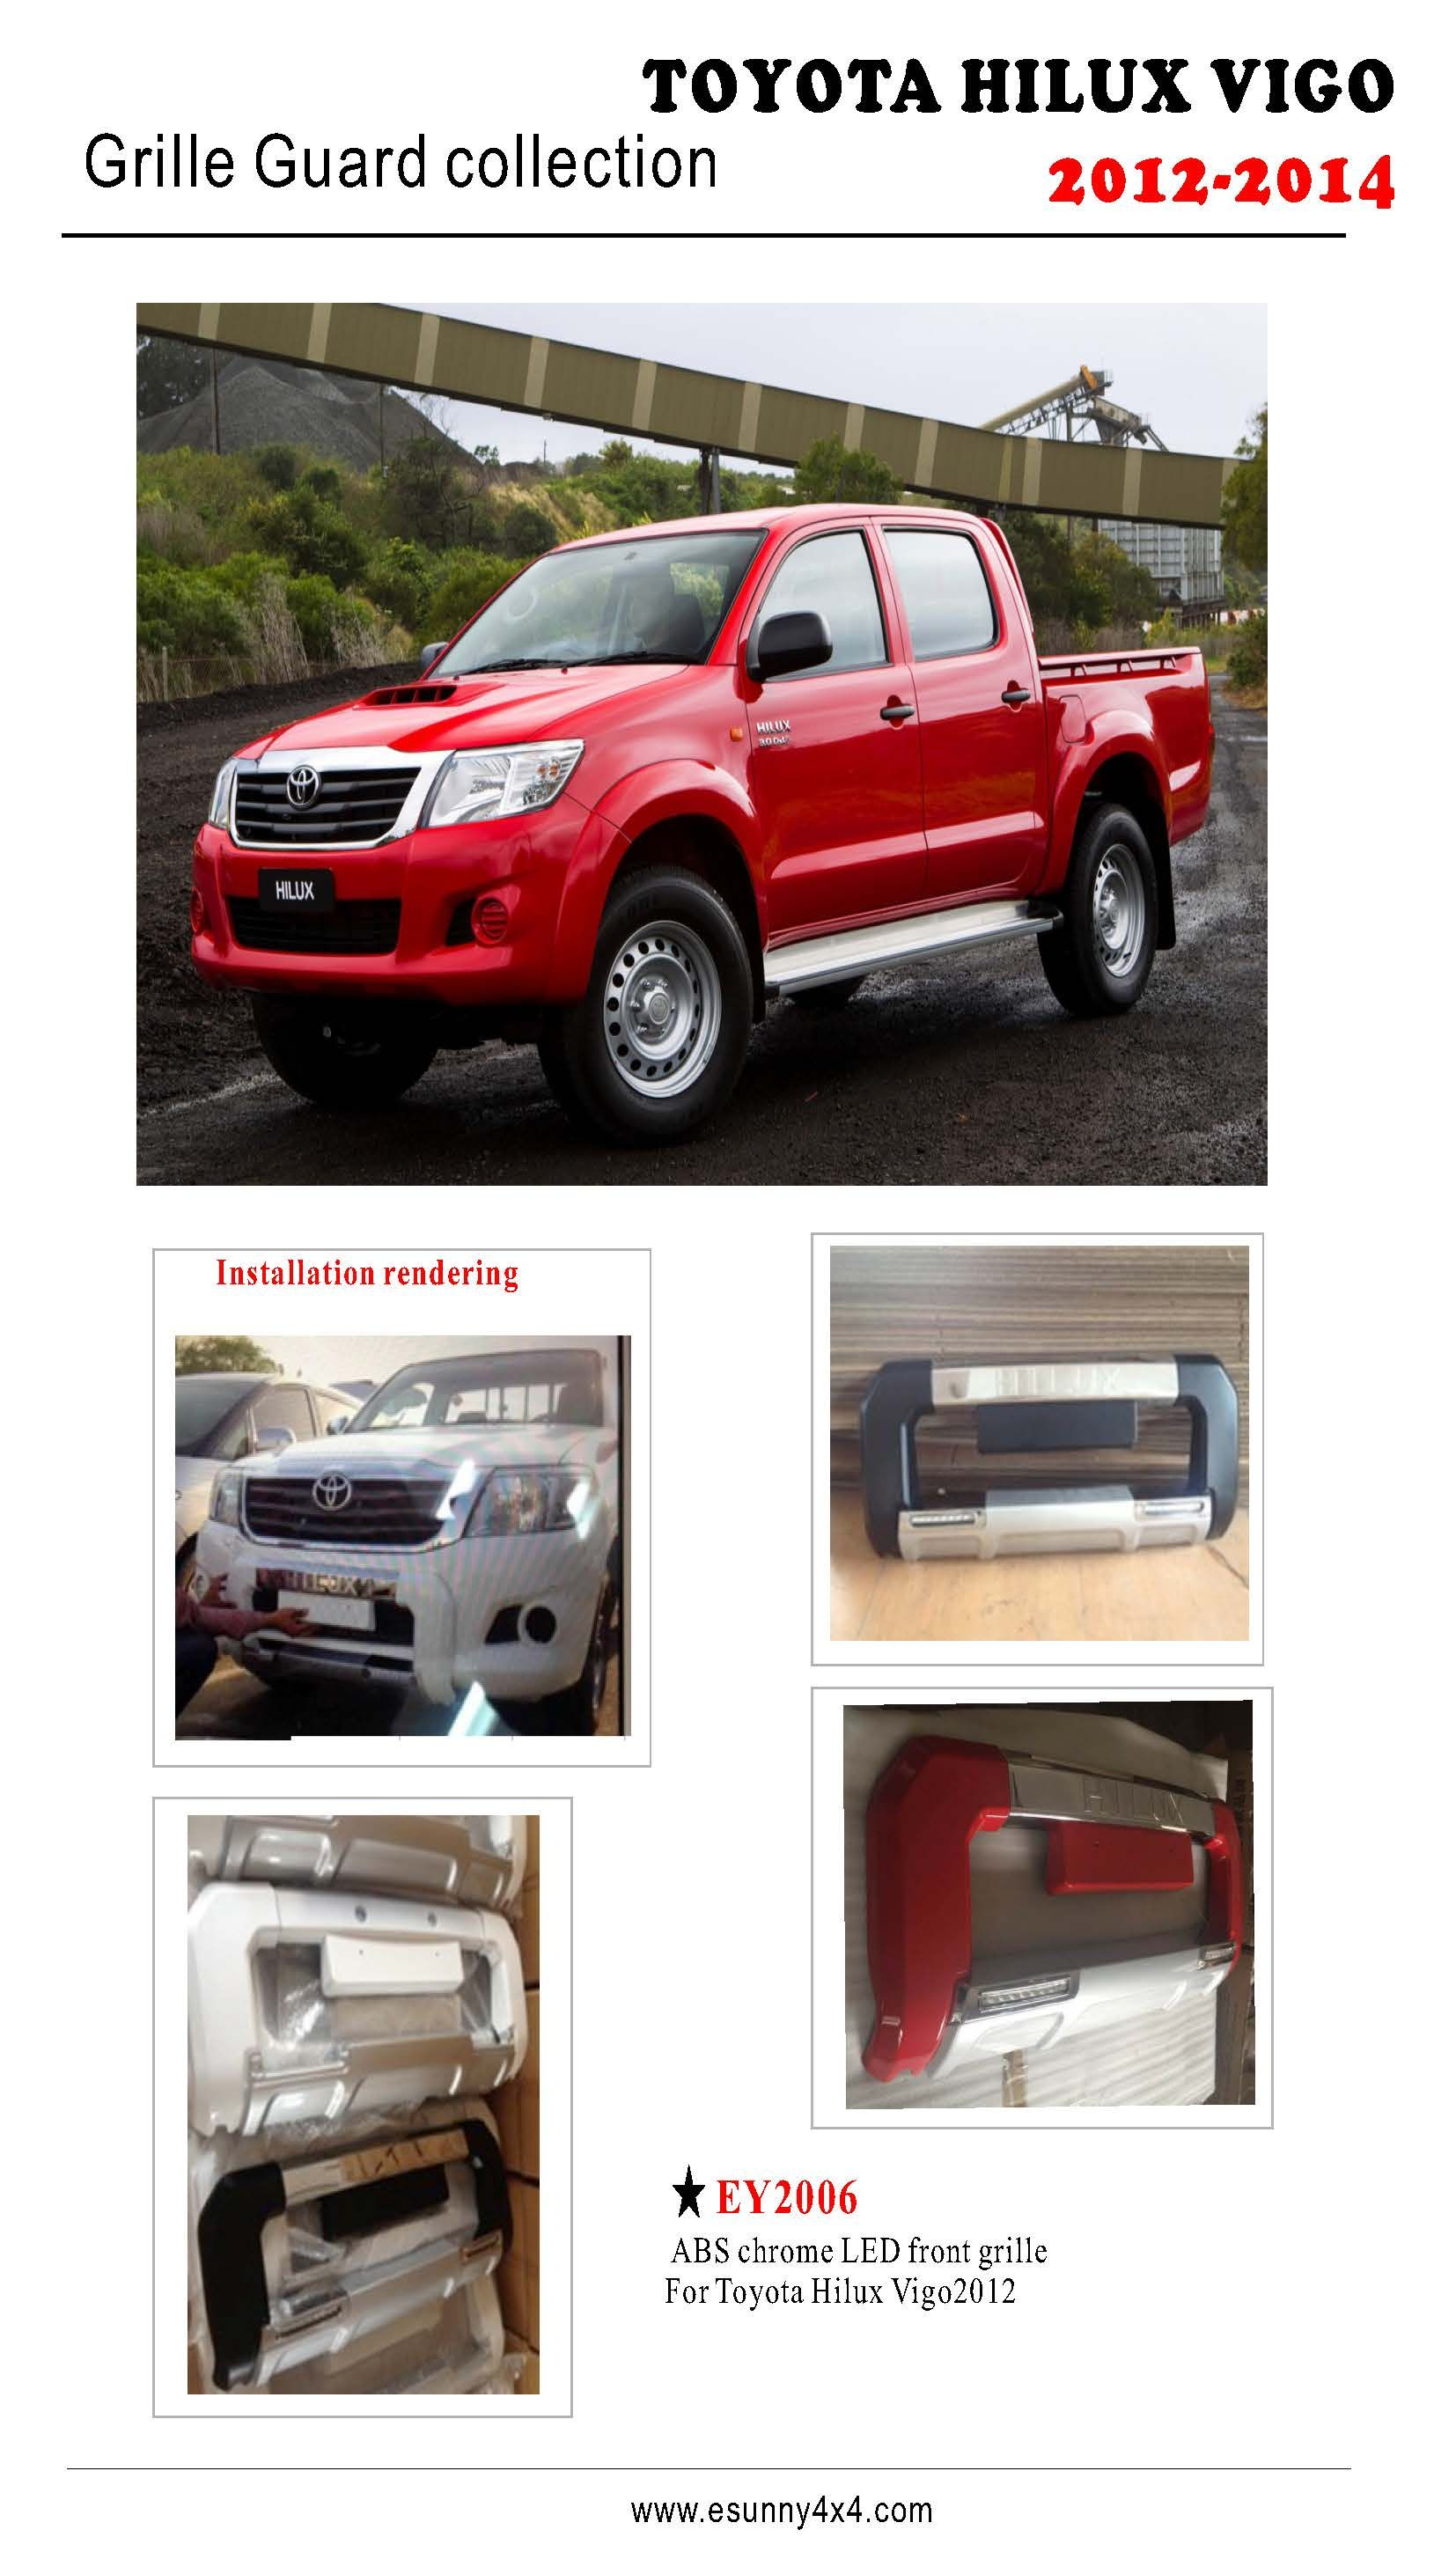 Hilux vigo front grille guard 2012 2014 without led toyota hilux vigo accessories pinterest toyota hilux and toyota